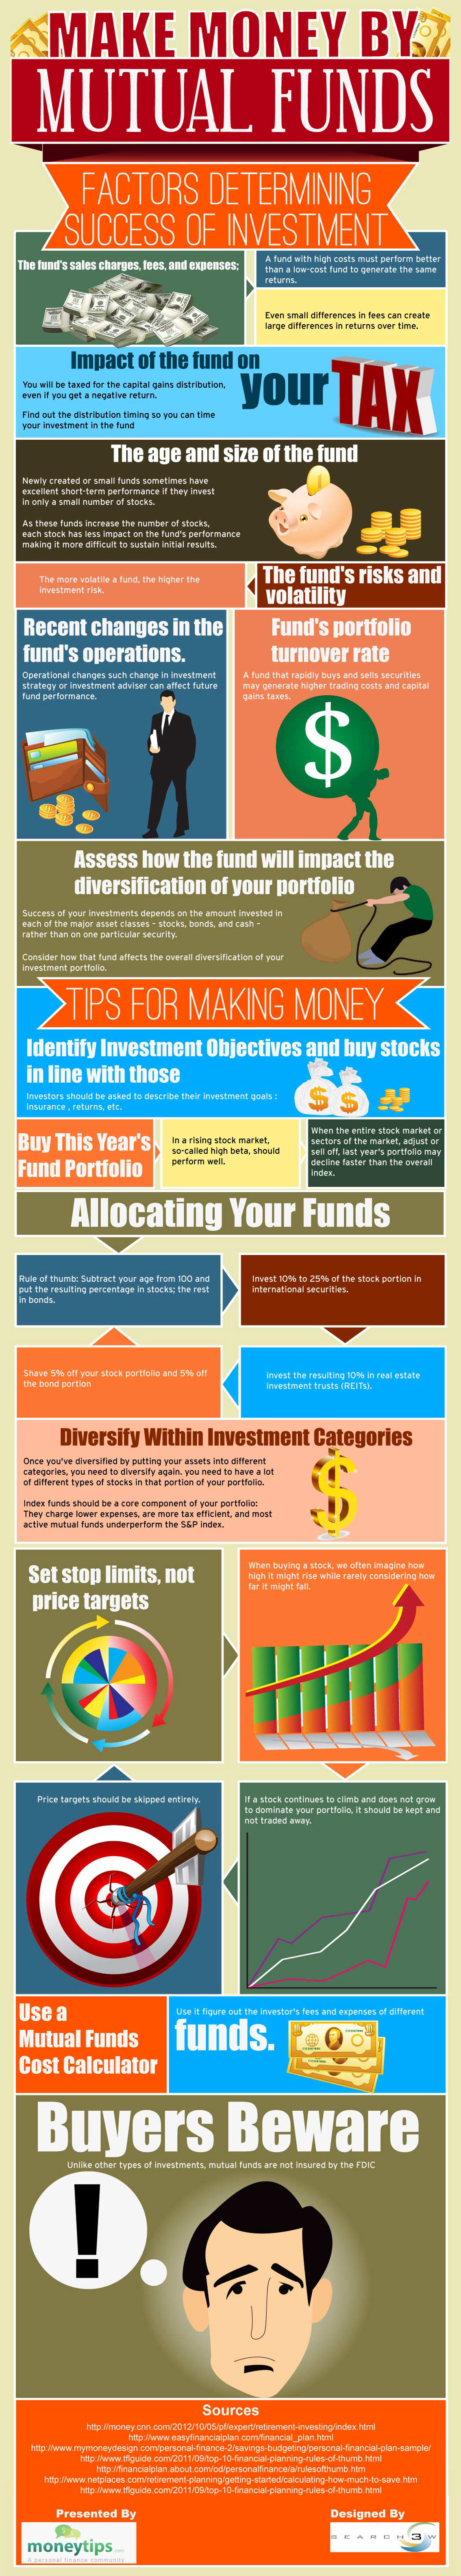 How to Make Money with Mutual Funds Infographic